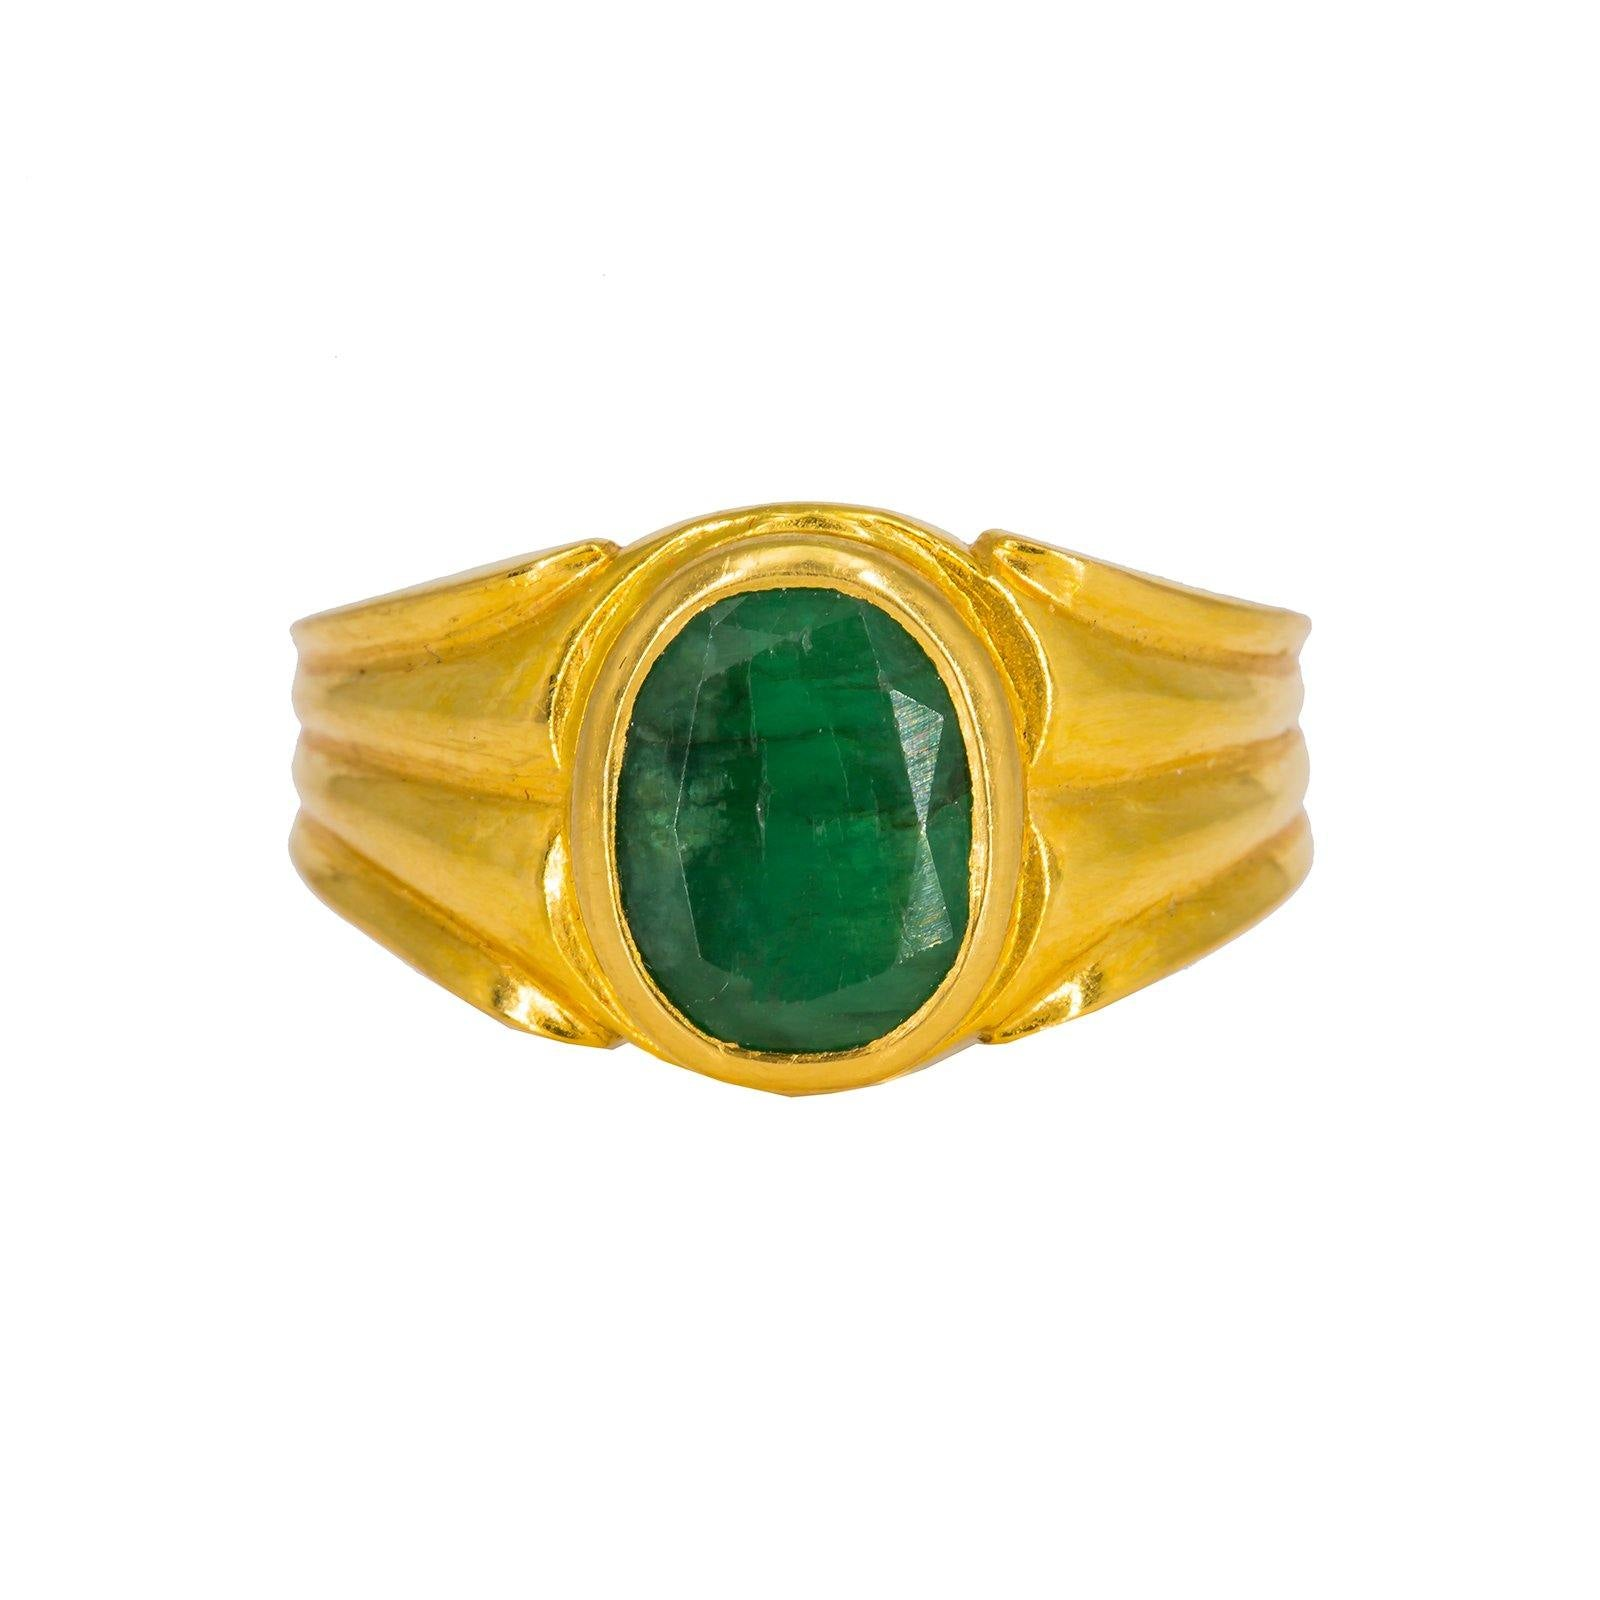 22K Yellow Gold Men's Ring W/ Emerald & Vintage Ribbed Setting